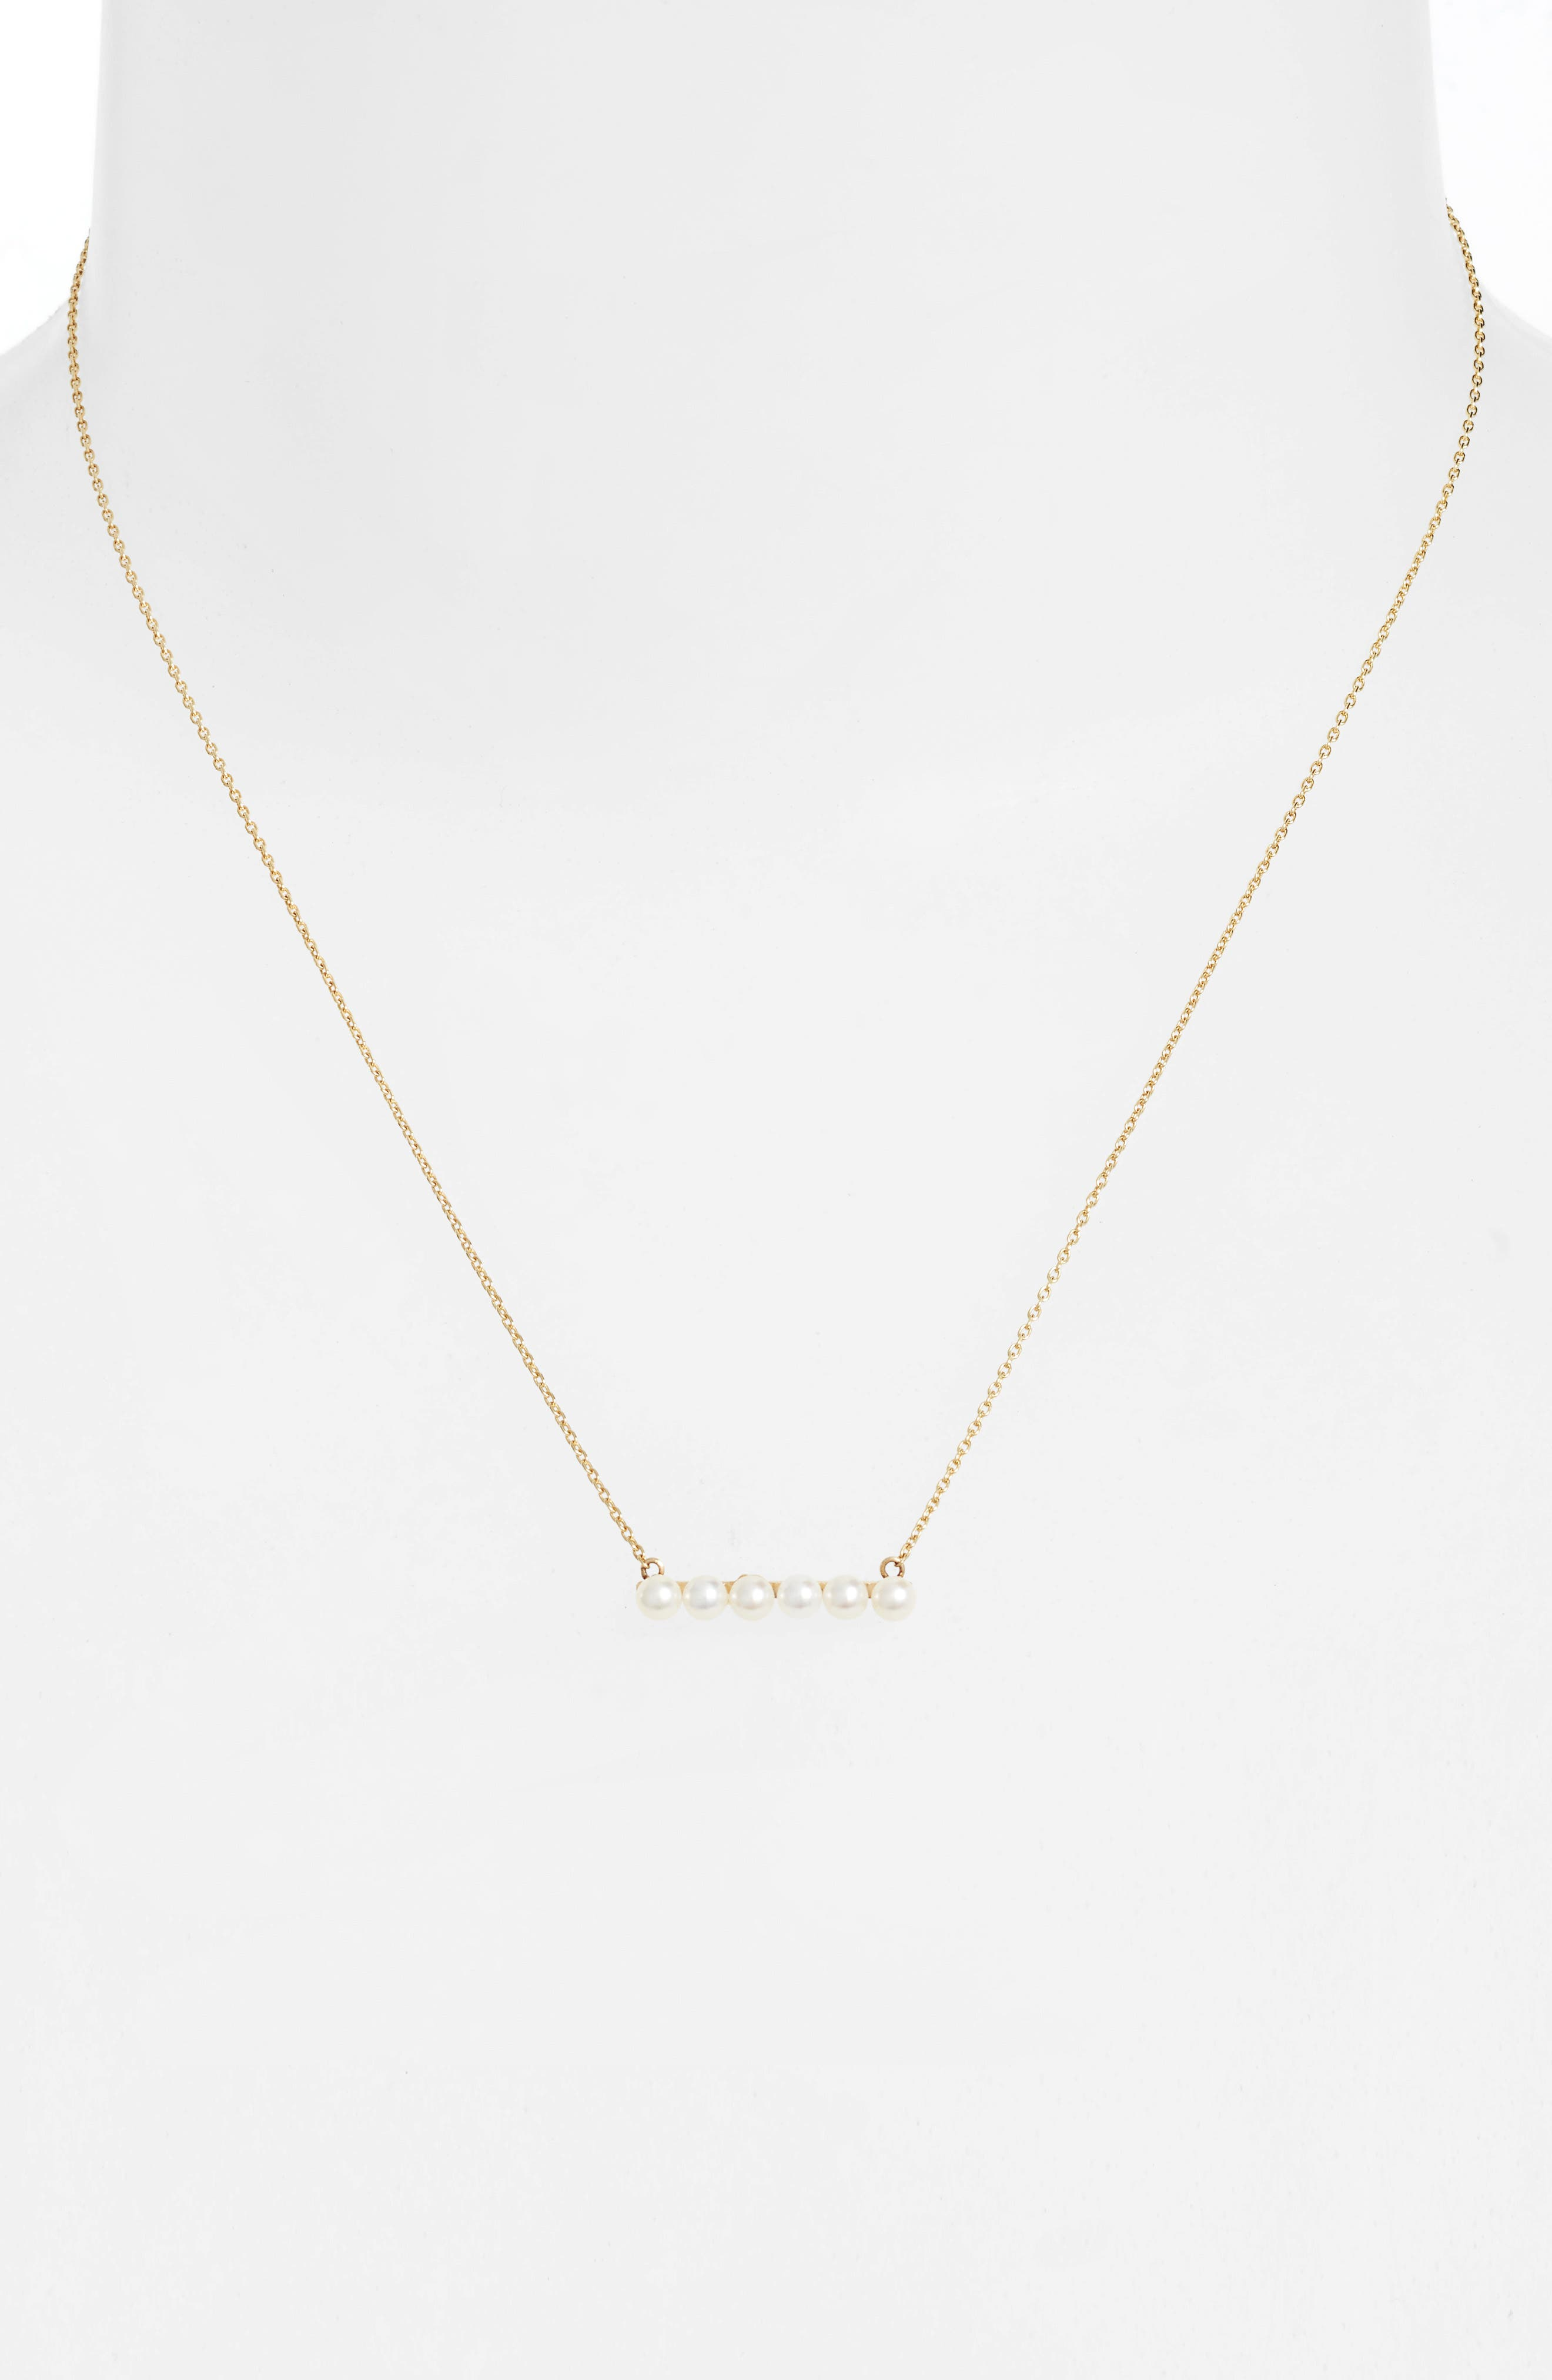 Cultured Baby Pearl Bar Necklace,                             Alternate thumbnail 2, color,                             YELLOW GOLD/ WHITE PEARL